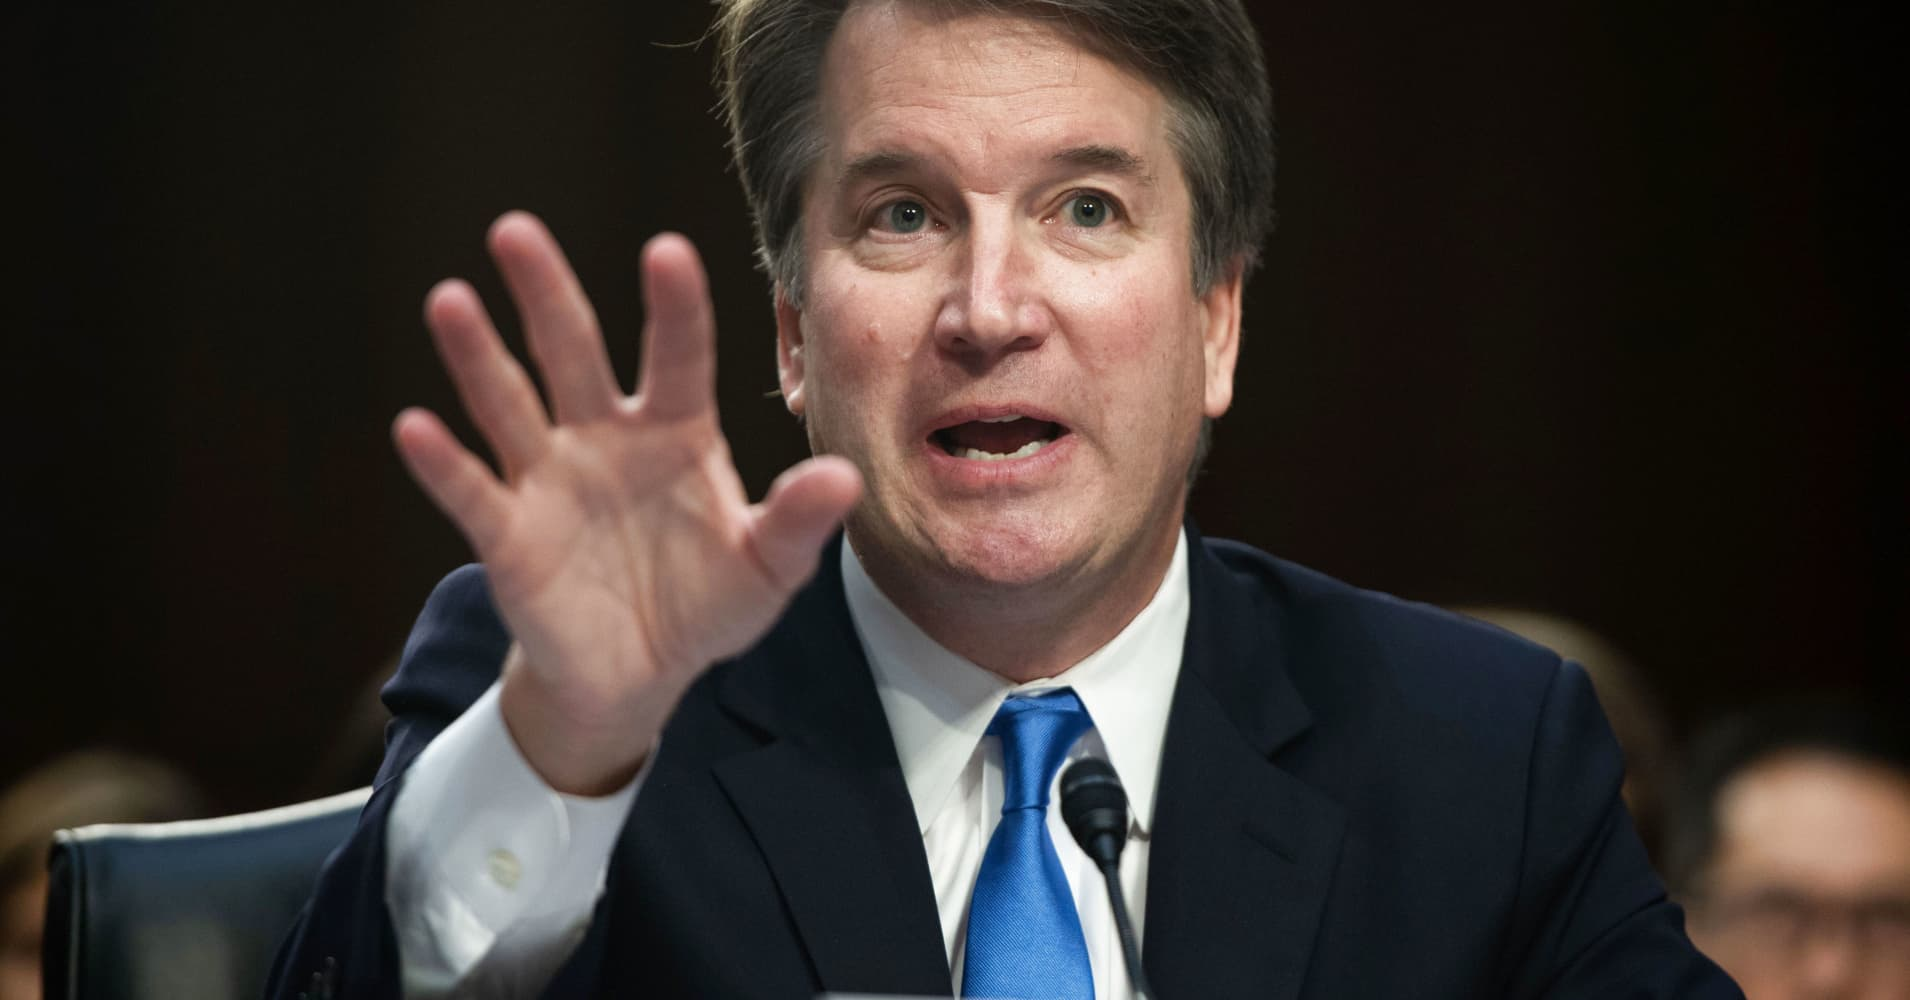 Brett Kavanaugh 'categorically' denies sexual misconduct accusation detailed in New Yorker report